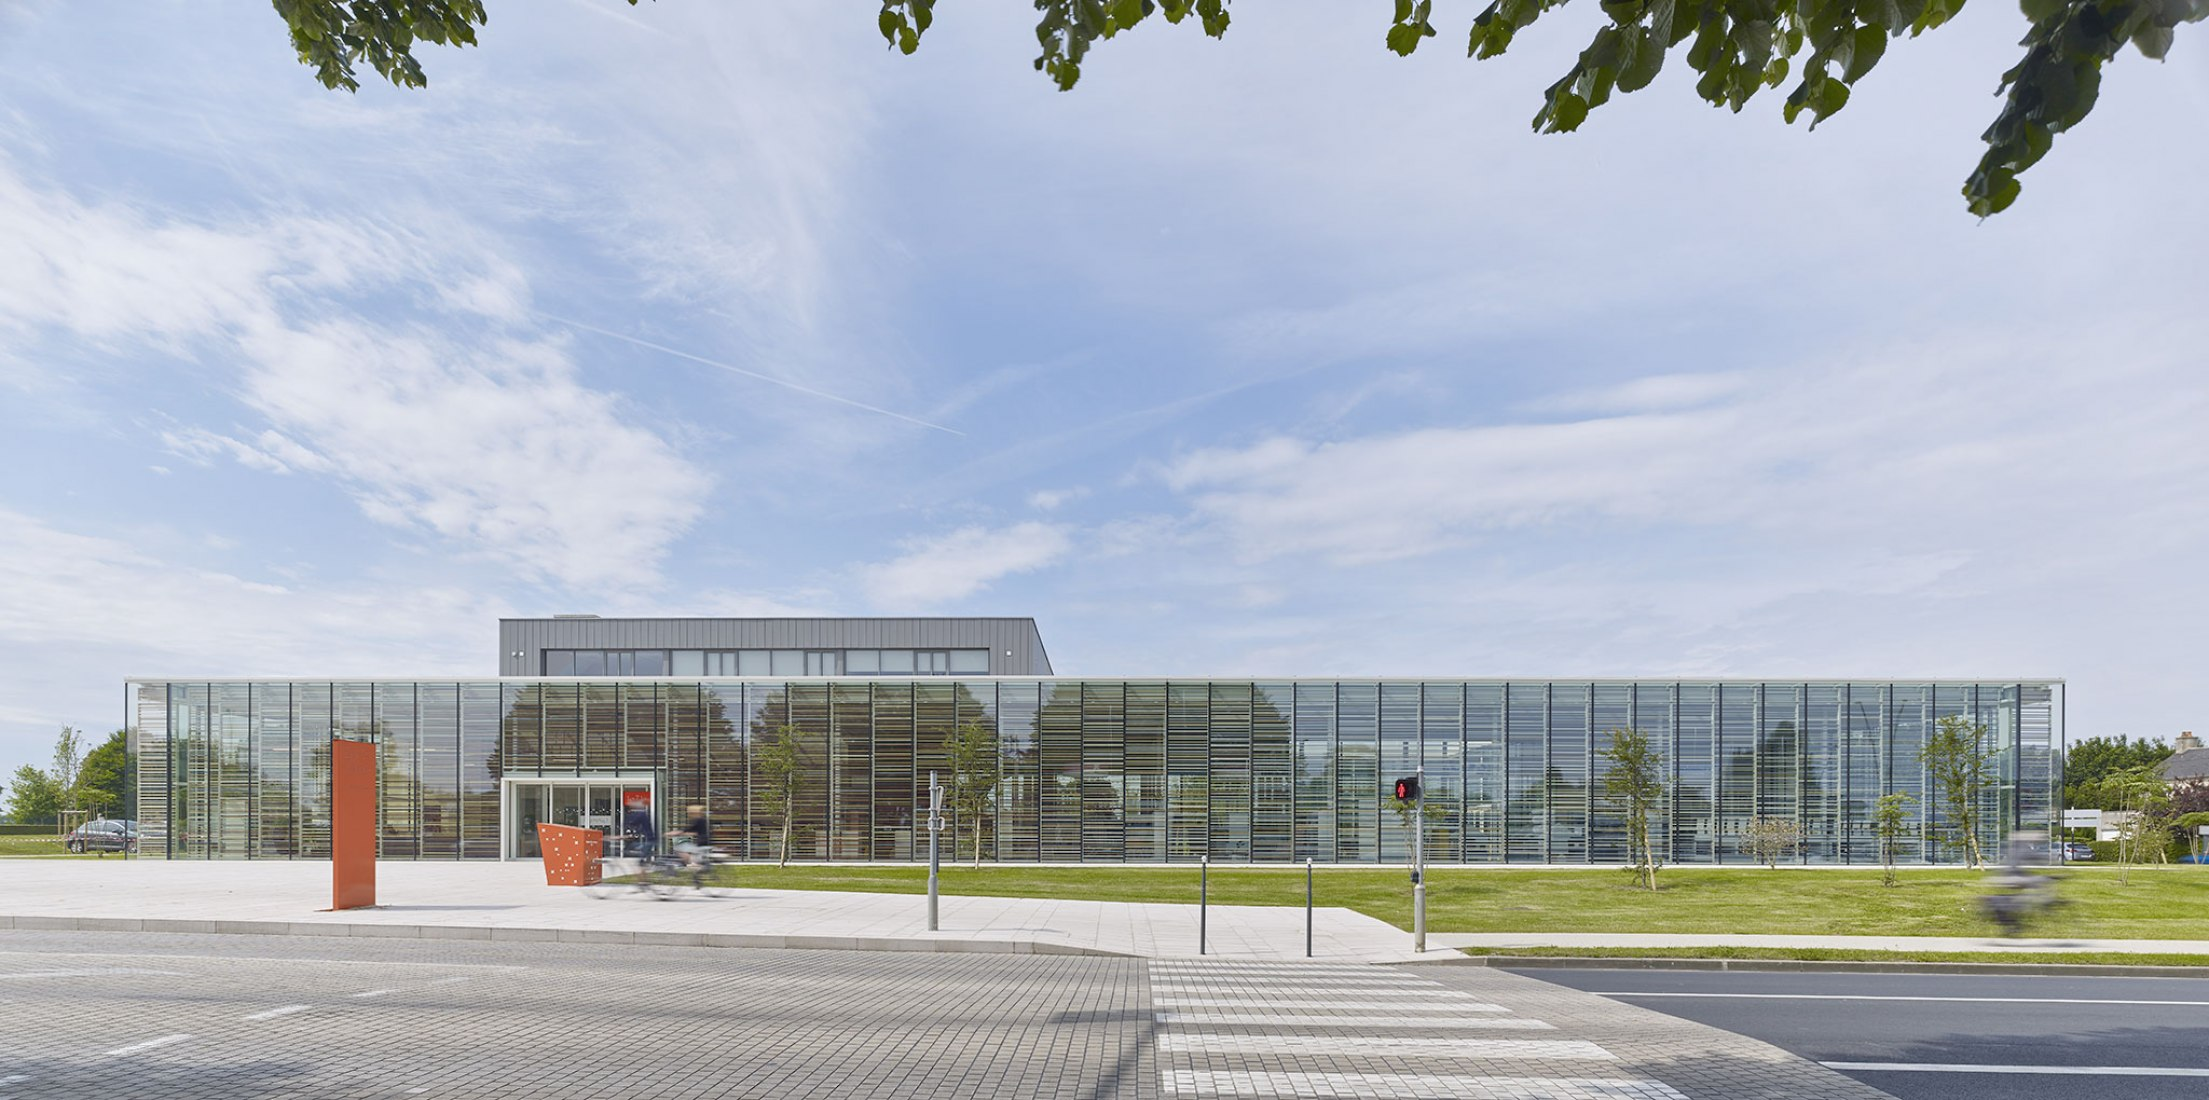 Bayeux Media Library by David Serero. Photograph by Didier Boy de la Tour